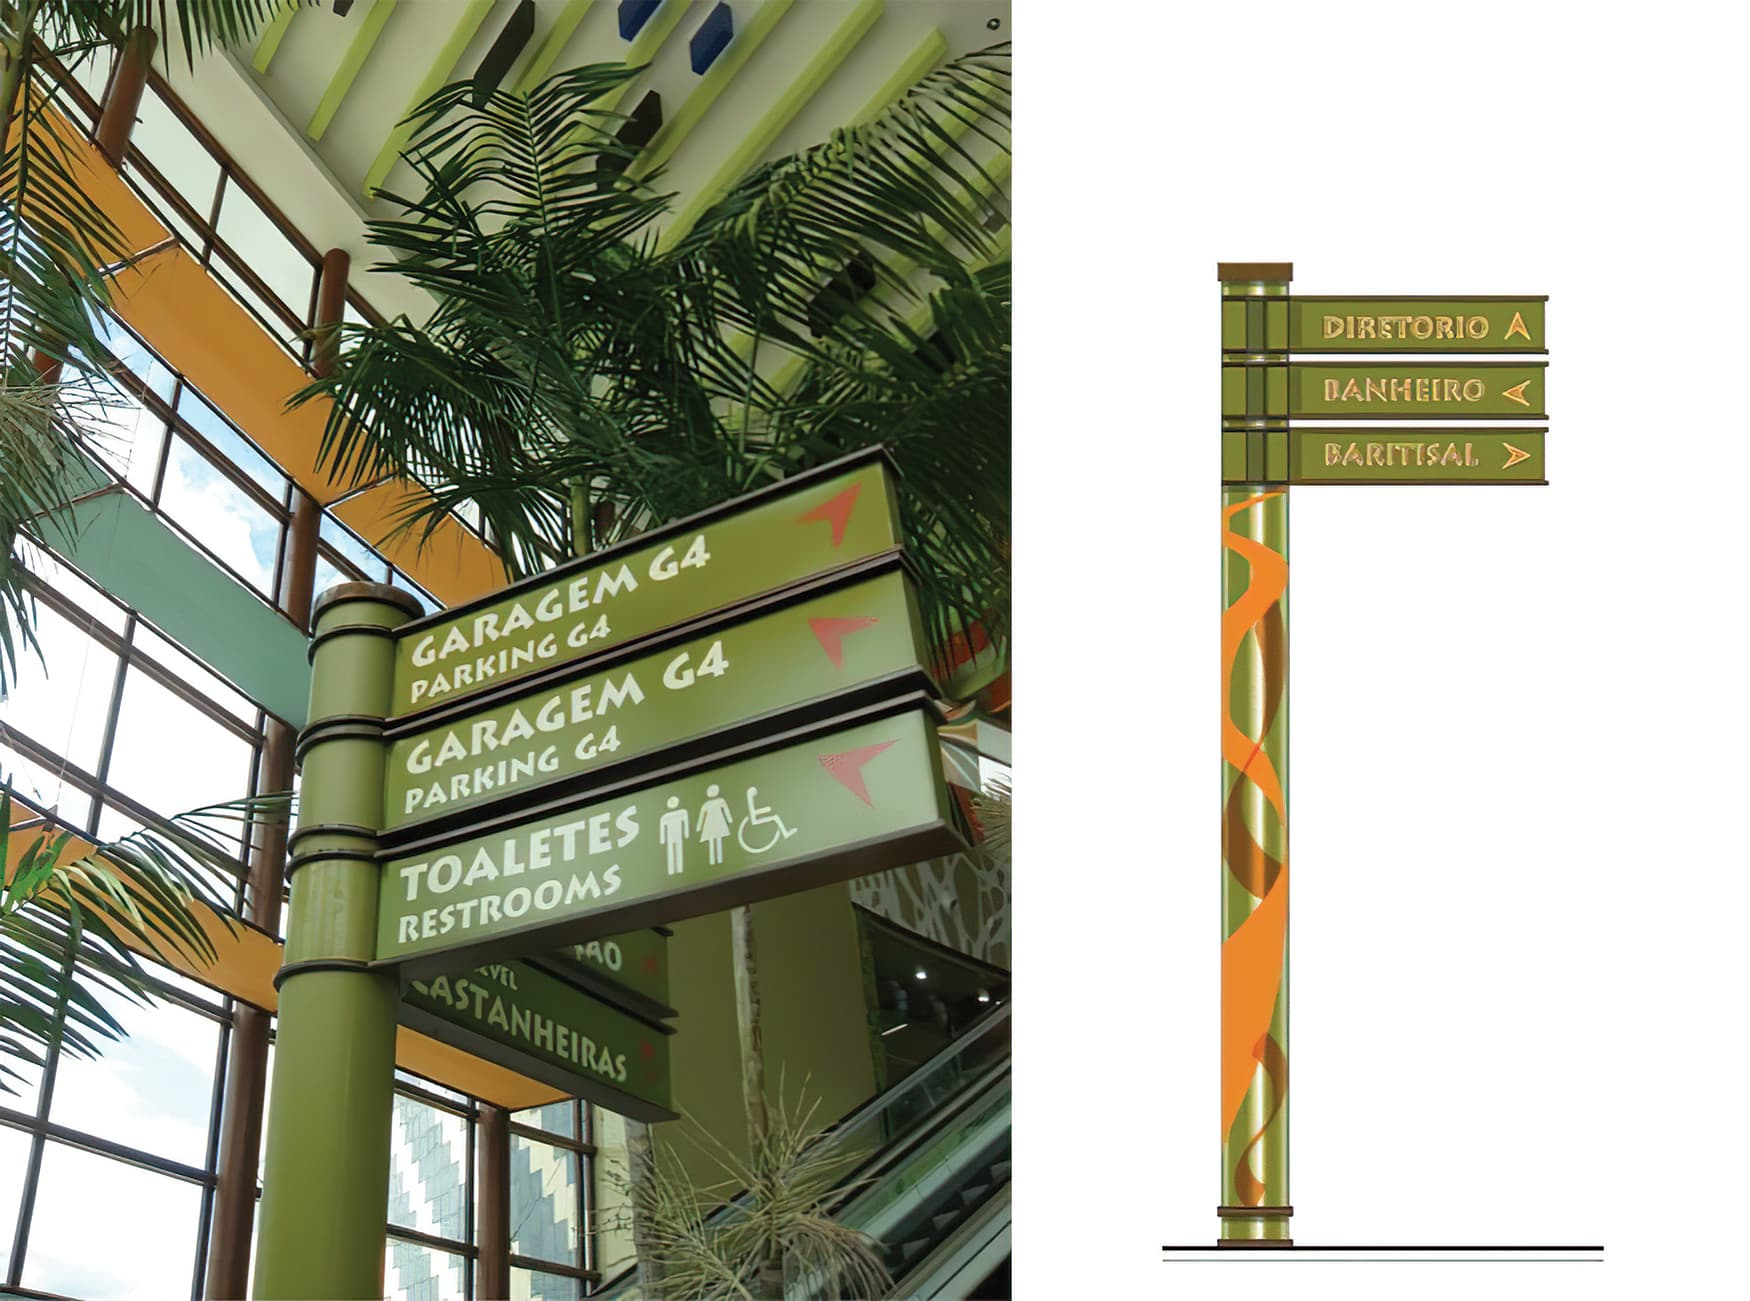 Manauara Shopping, a retail destination project located in Brazil. Directional Signage. Wayfinding Design.